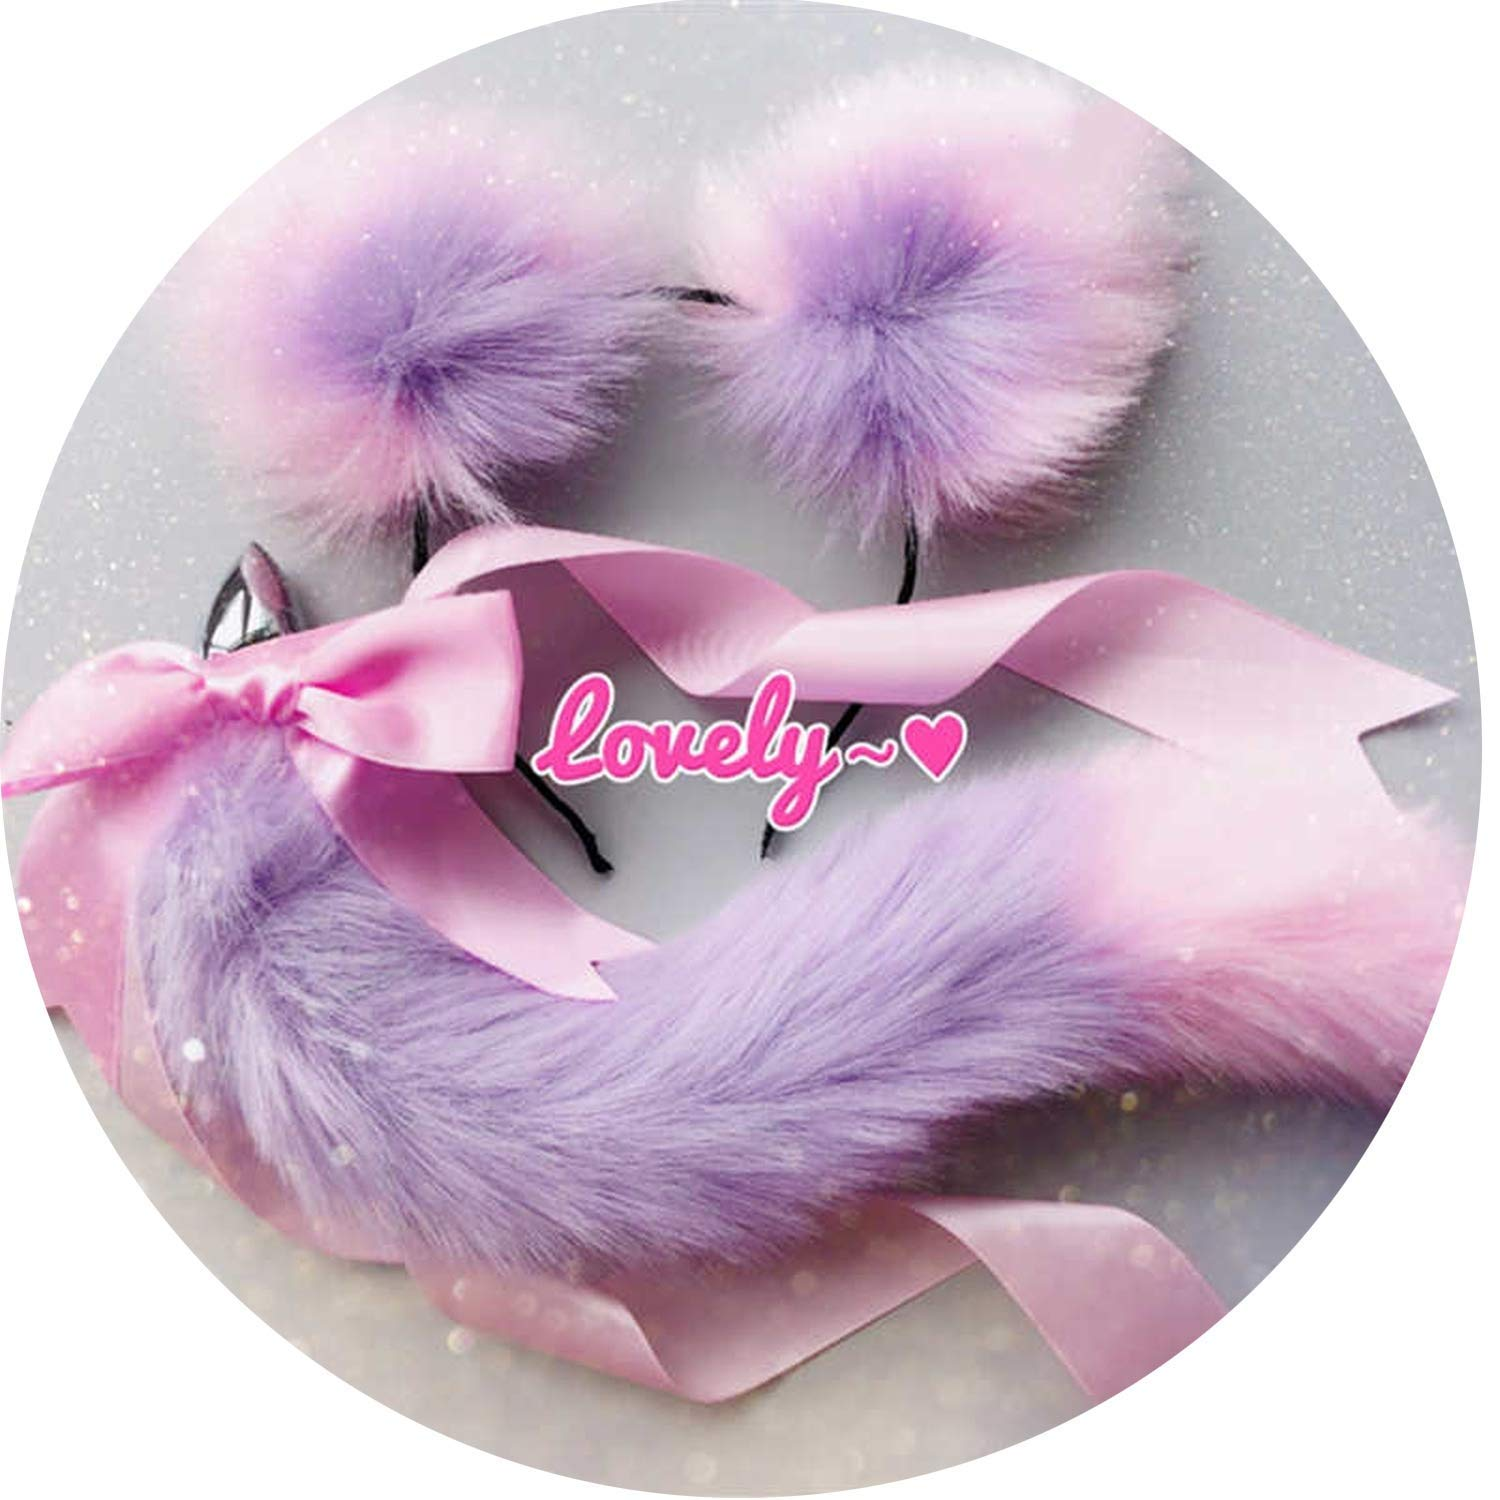 XJWYCYY Tshirt Hollow Plug Butt Cute Soft Cat Ears Headbands with T-àil Bow Metal Butt A-nàl Plug Erotic Cosplay Accessories Adult Sex Toys for Couples,Purple Pink,